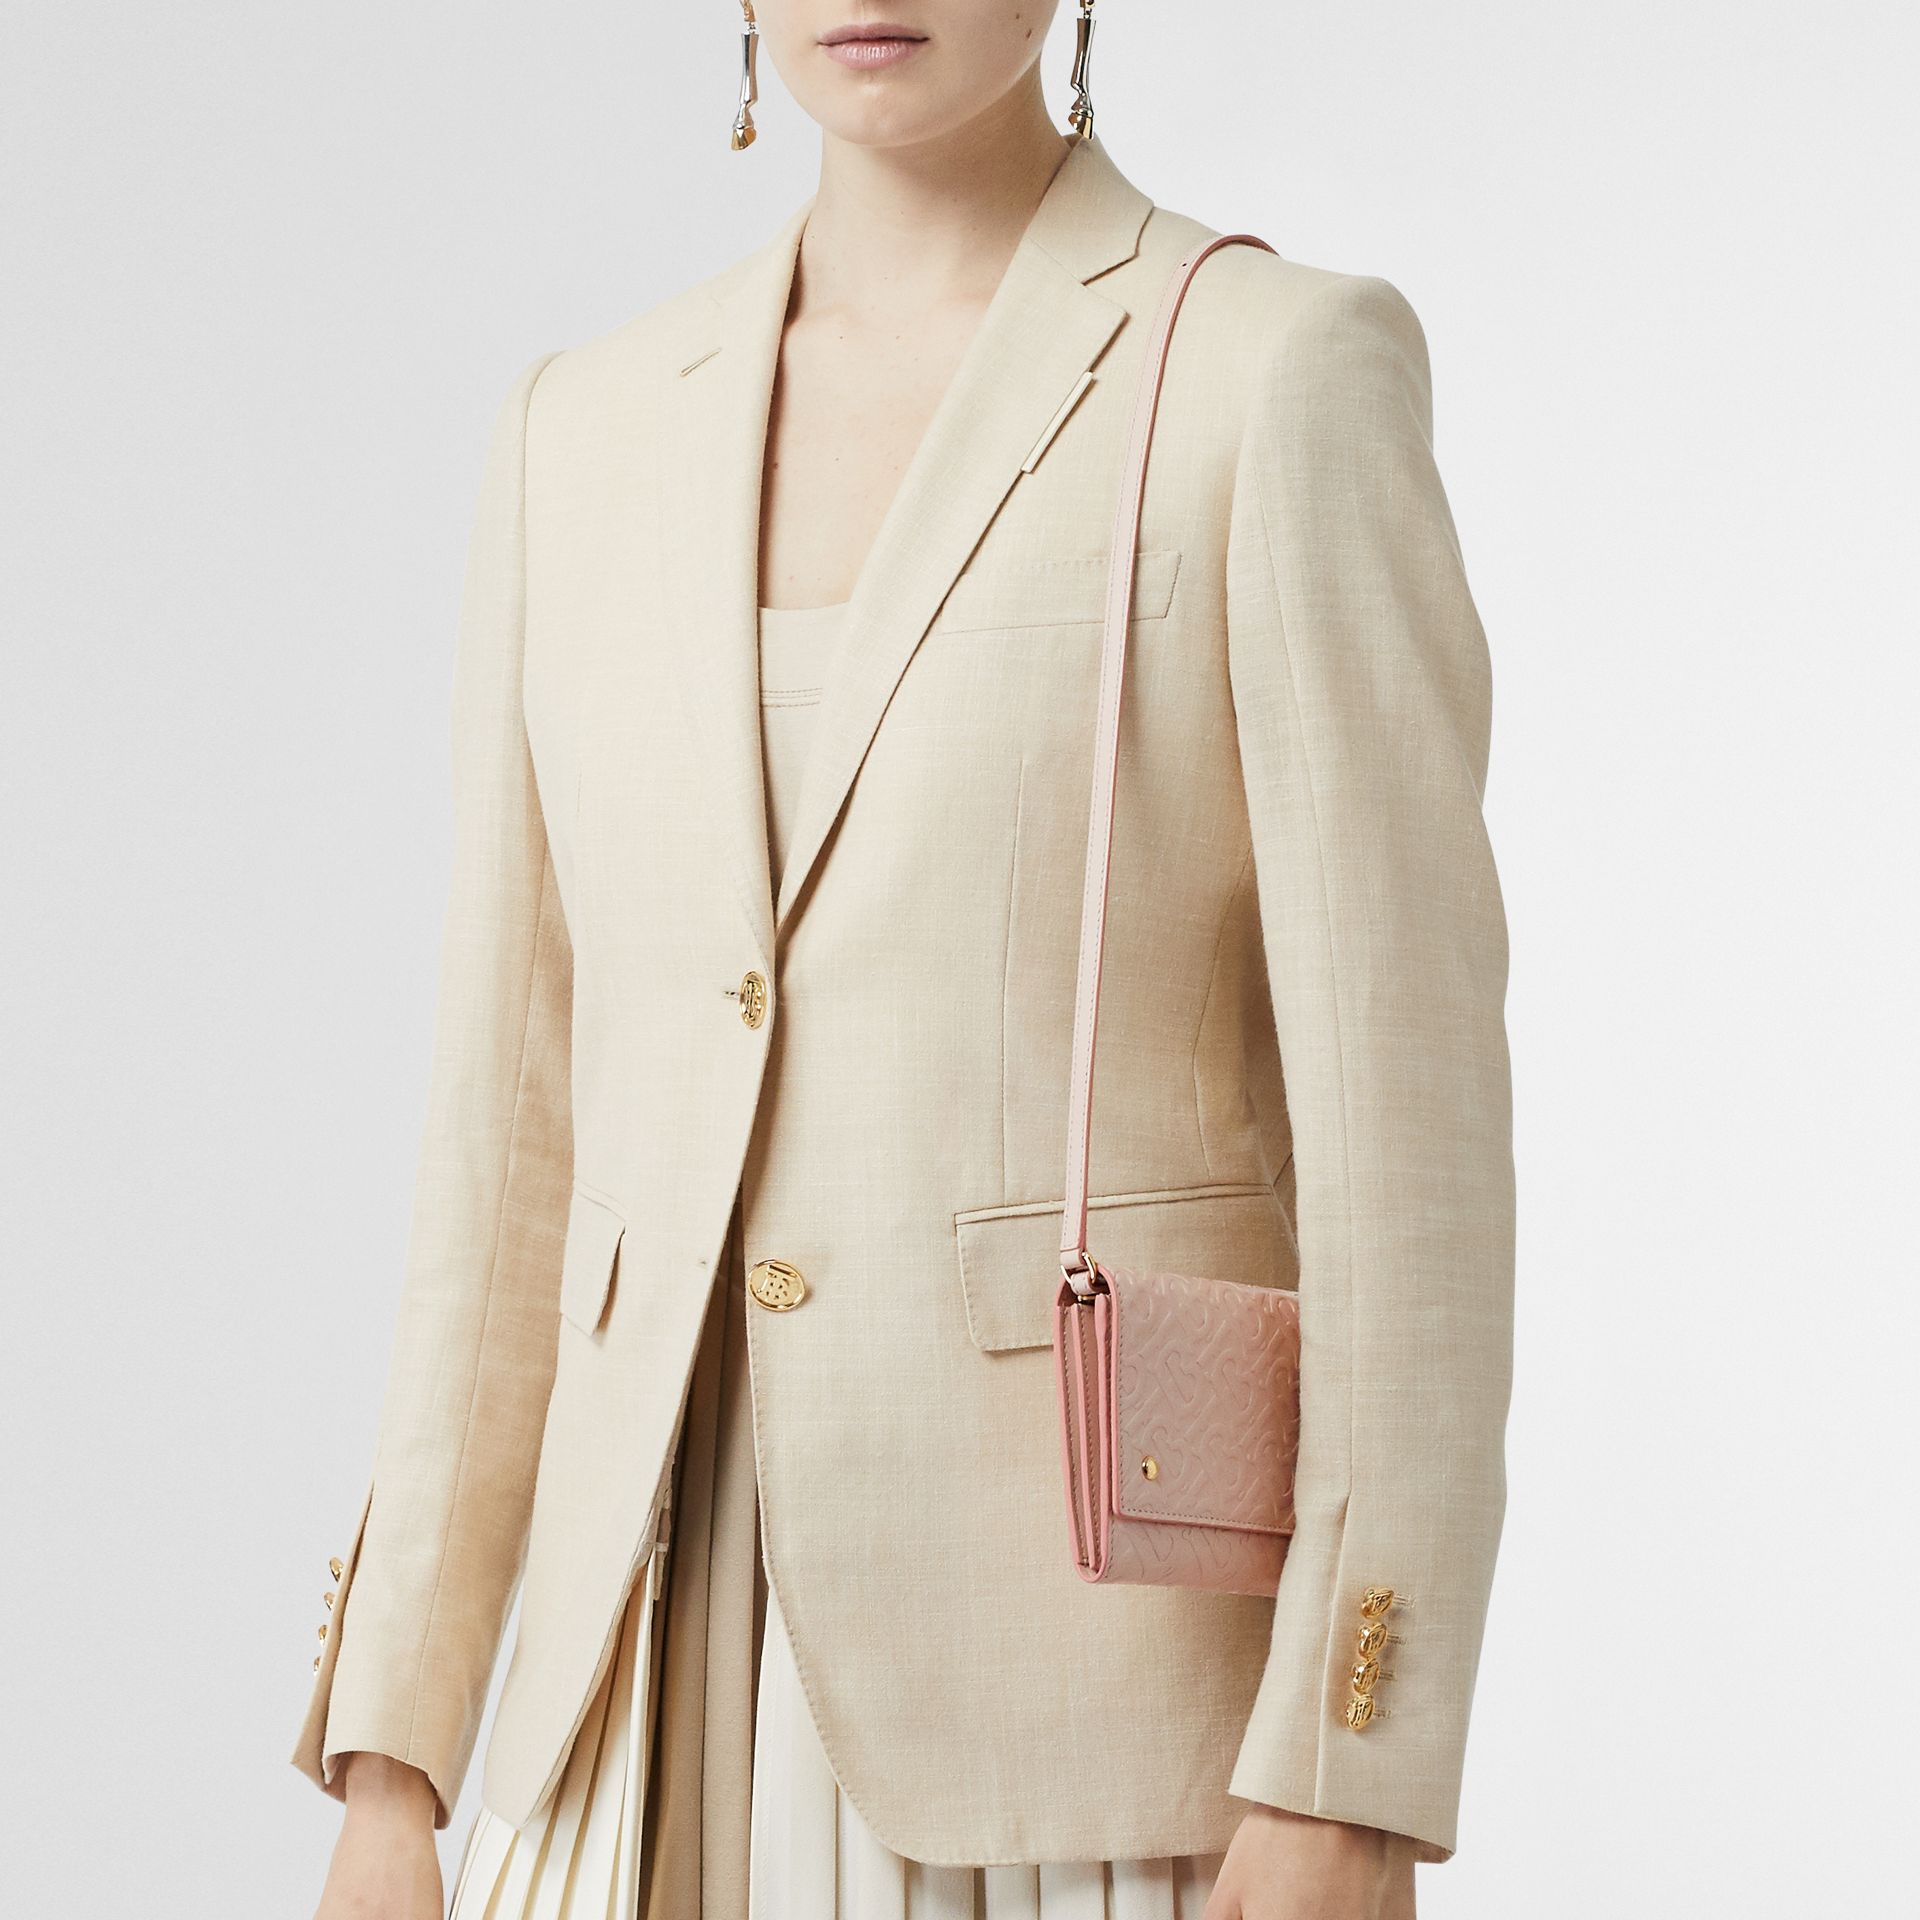 Portefeuille en cuir Monogram et sangle amovible (Beige Rose) - Femme | Burberry Canada - photo de la galerie 2